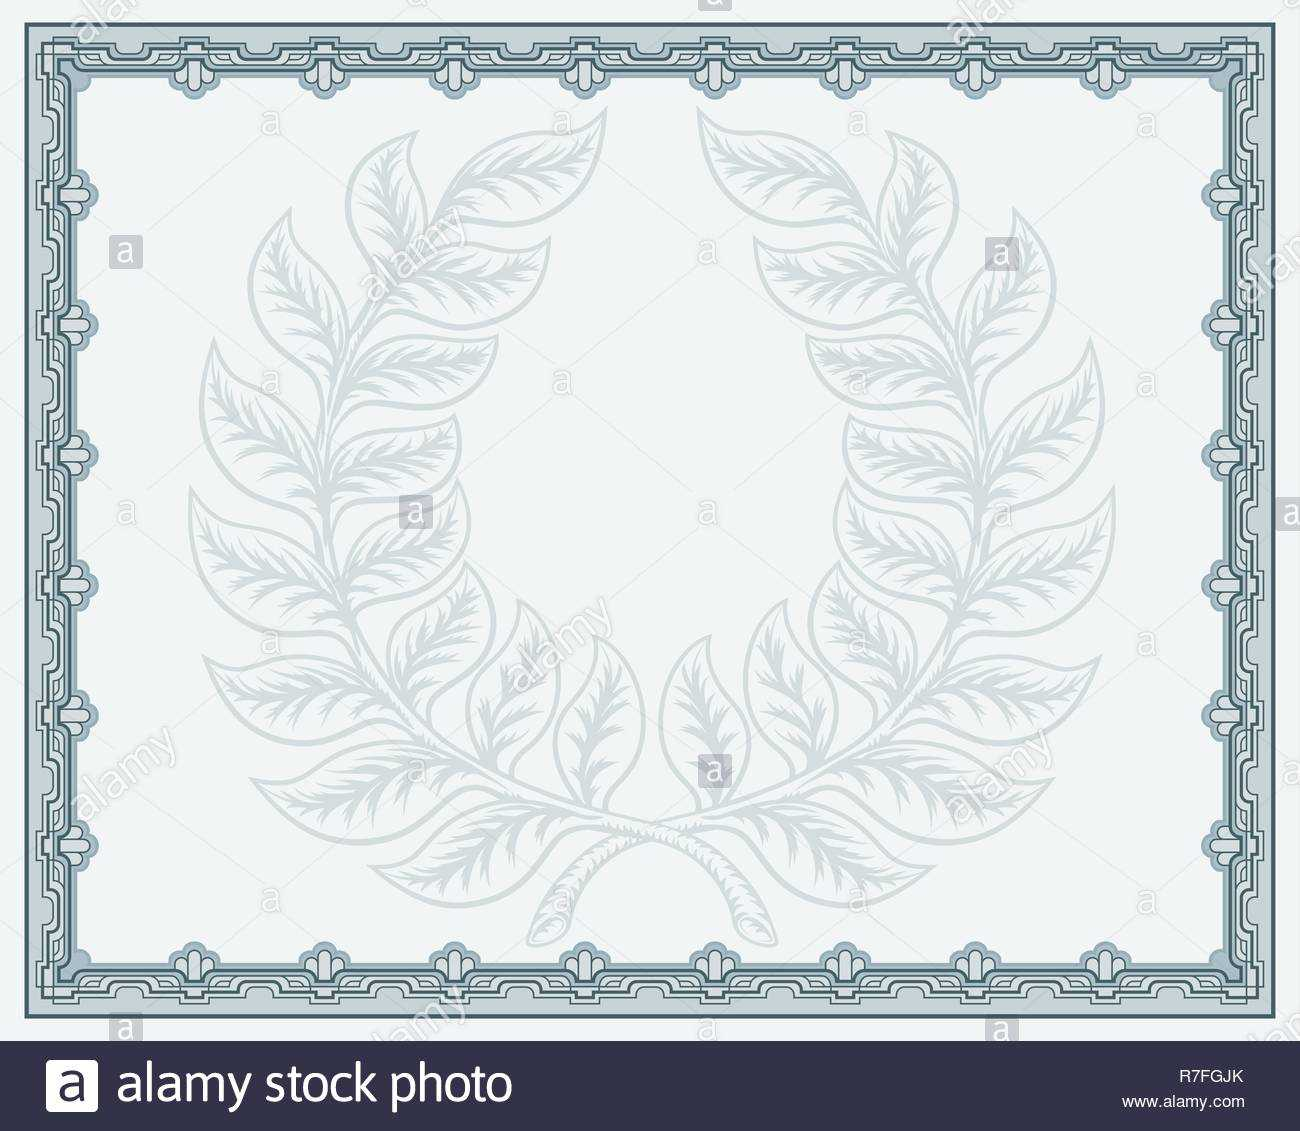 Certificate Template Diploma Background Stock Vector Art In Qualification Certificate Template